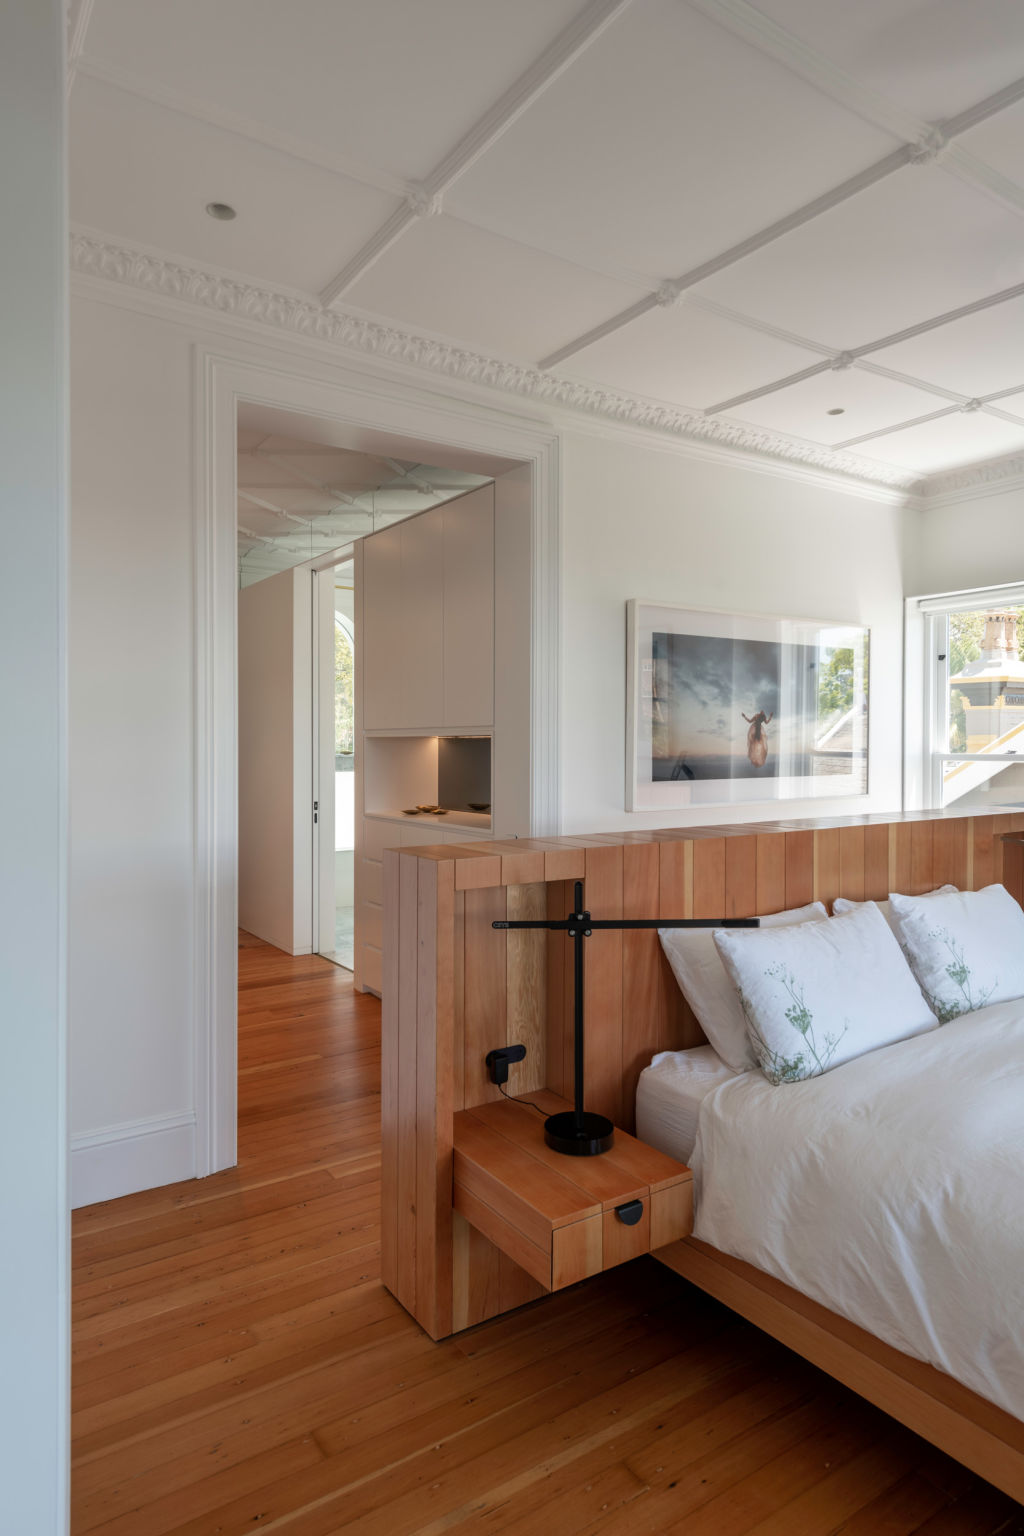 Behind the custom-made bedhead and between the wall and ceiling, a clerestory preserves the plasterwork. Kirribilli cool.